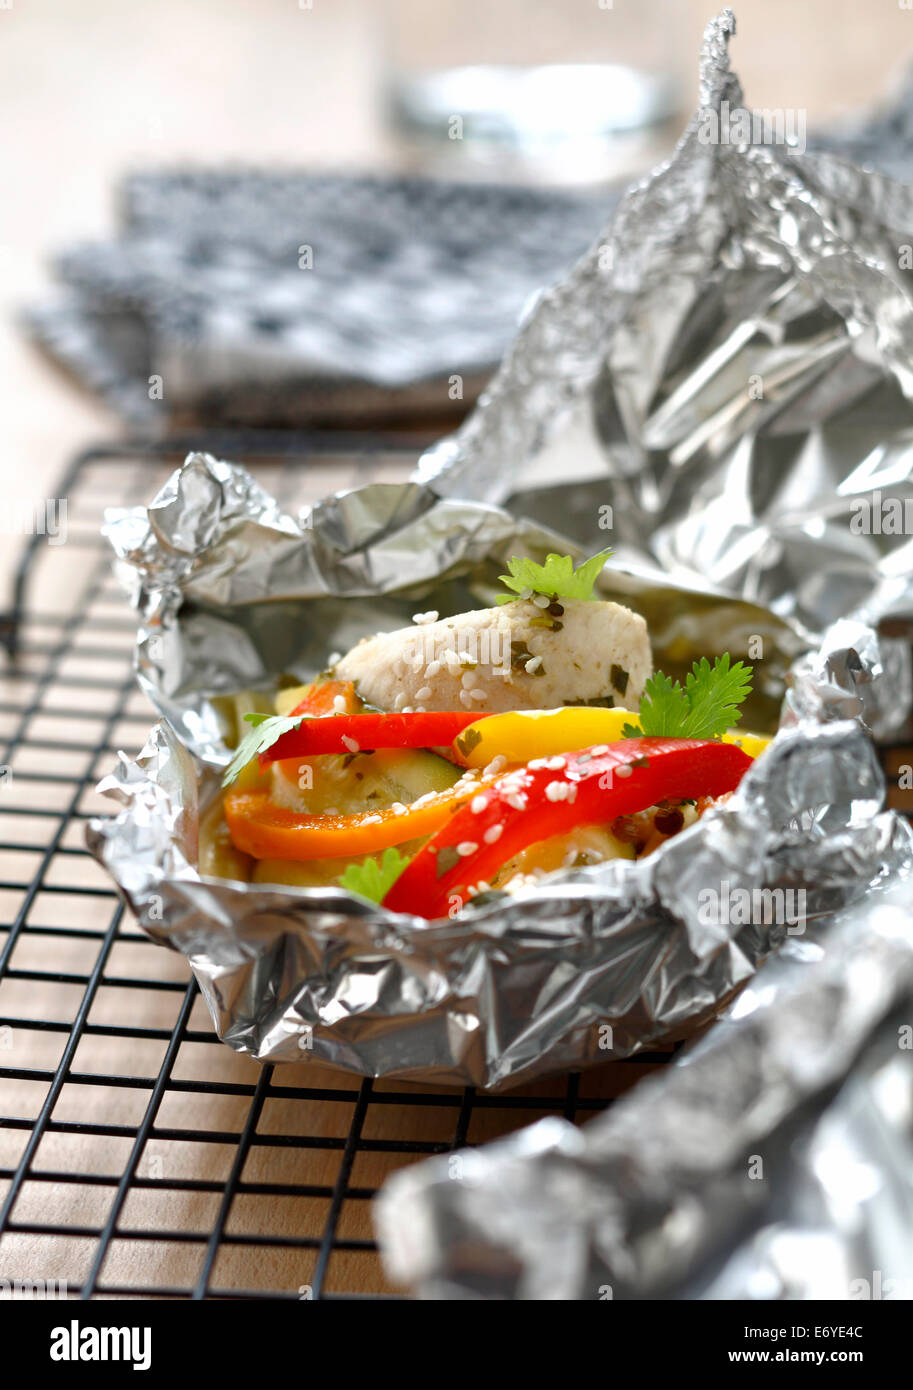 Oriental-style steamed rabbit cooked in aluminium foil - Stock Image